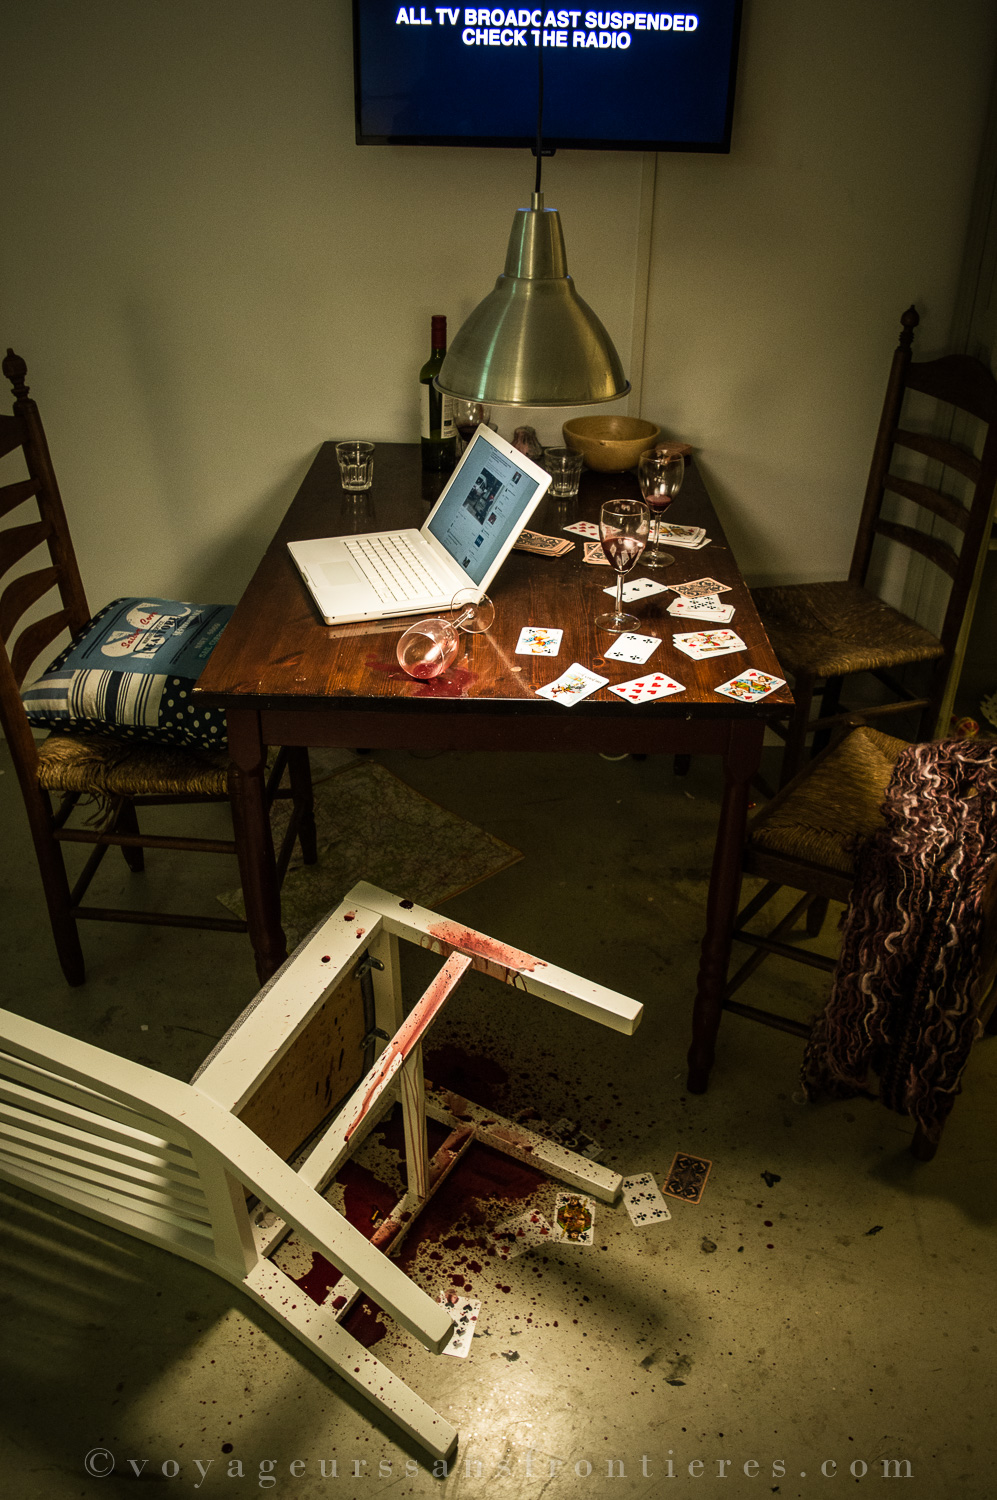 Messy table at the Humanity House Museum - The Hague, The Netherlands